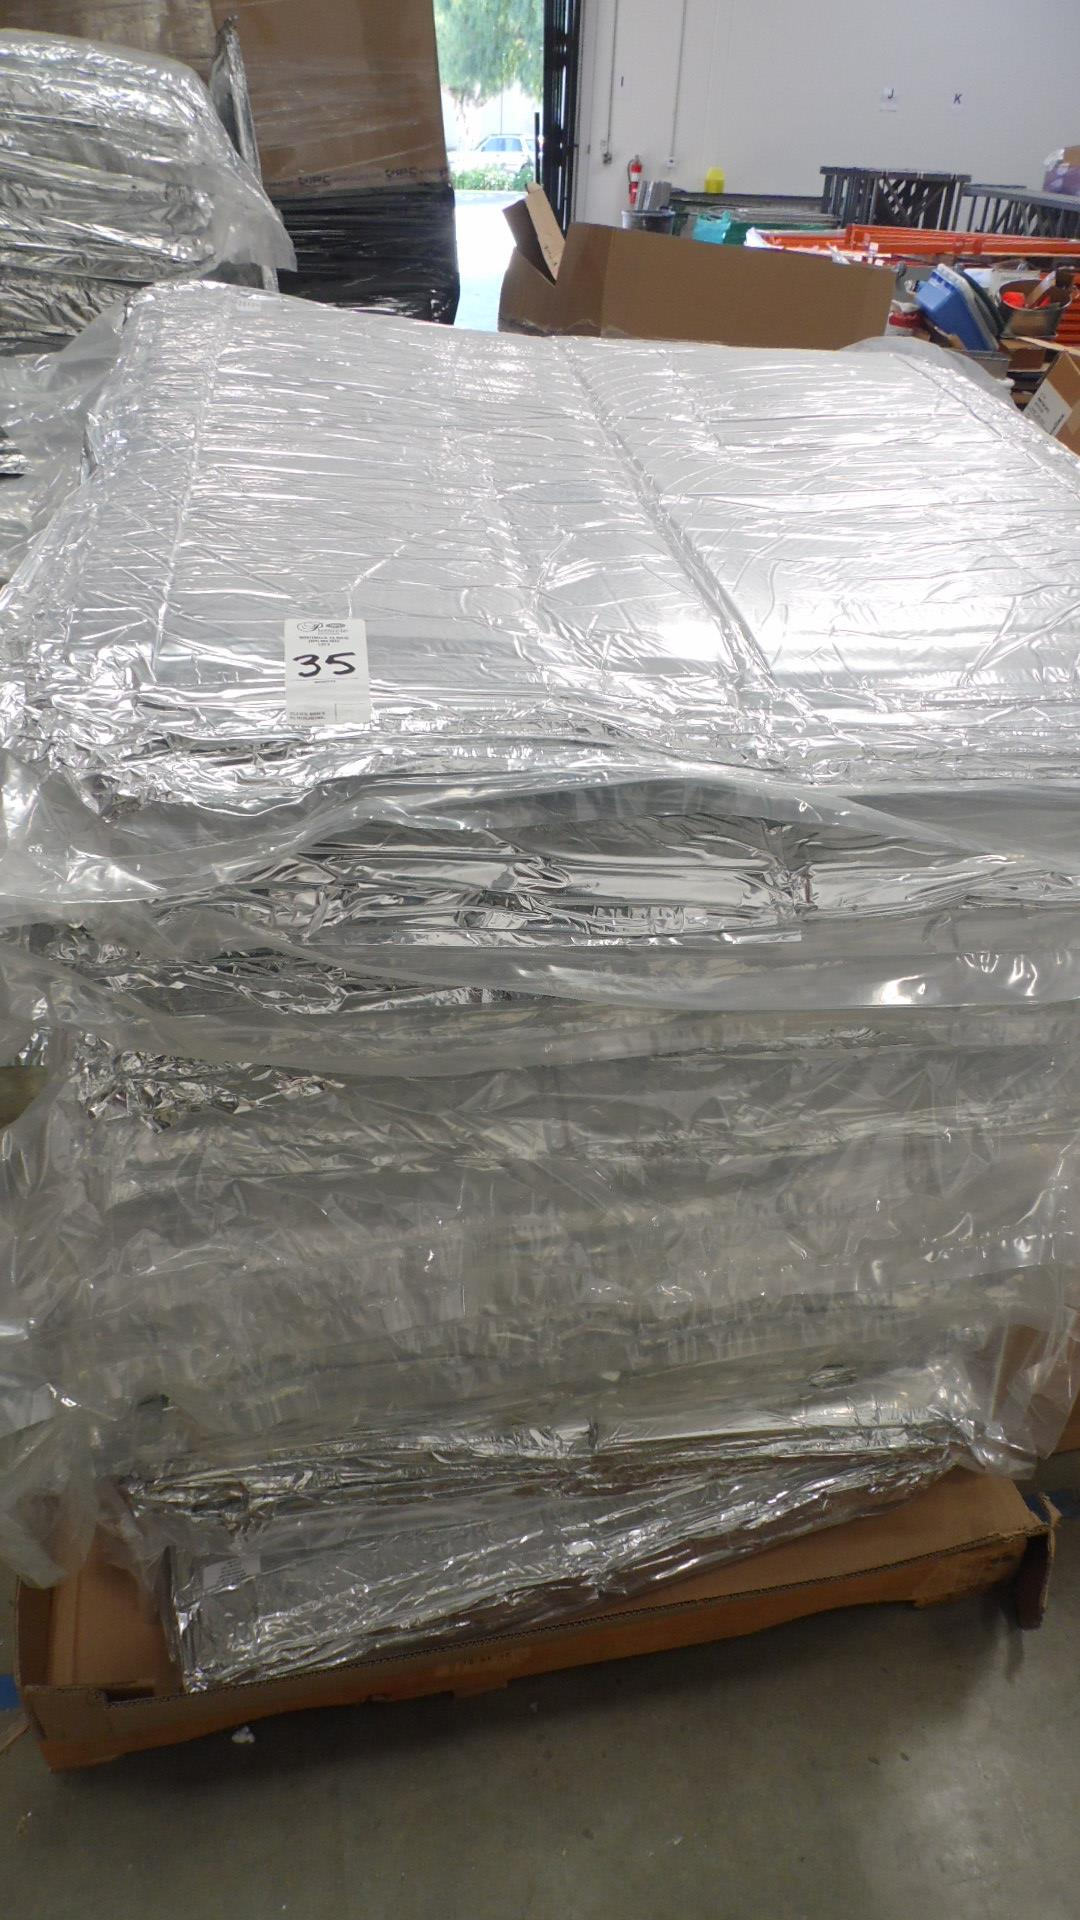 Lot 35 - PALLET INSULATED PACKS 17X14X11